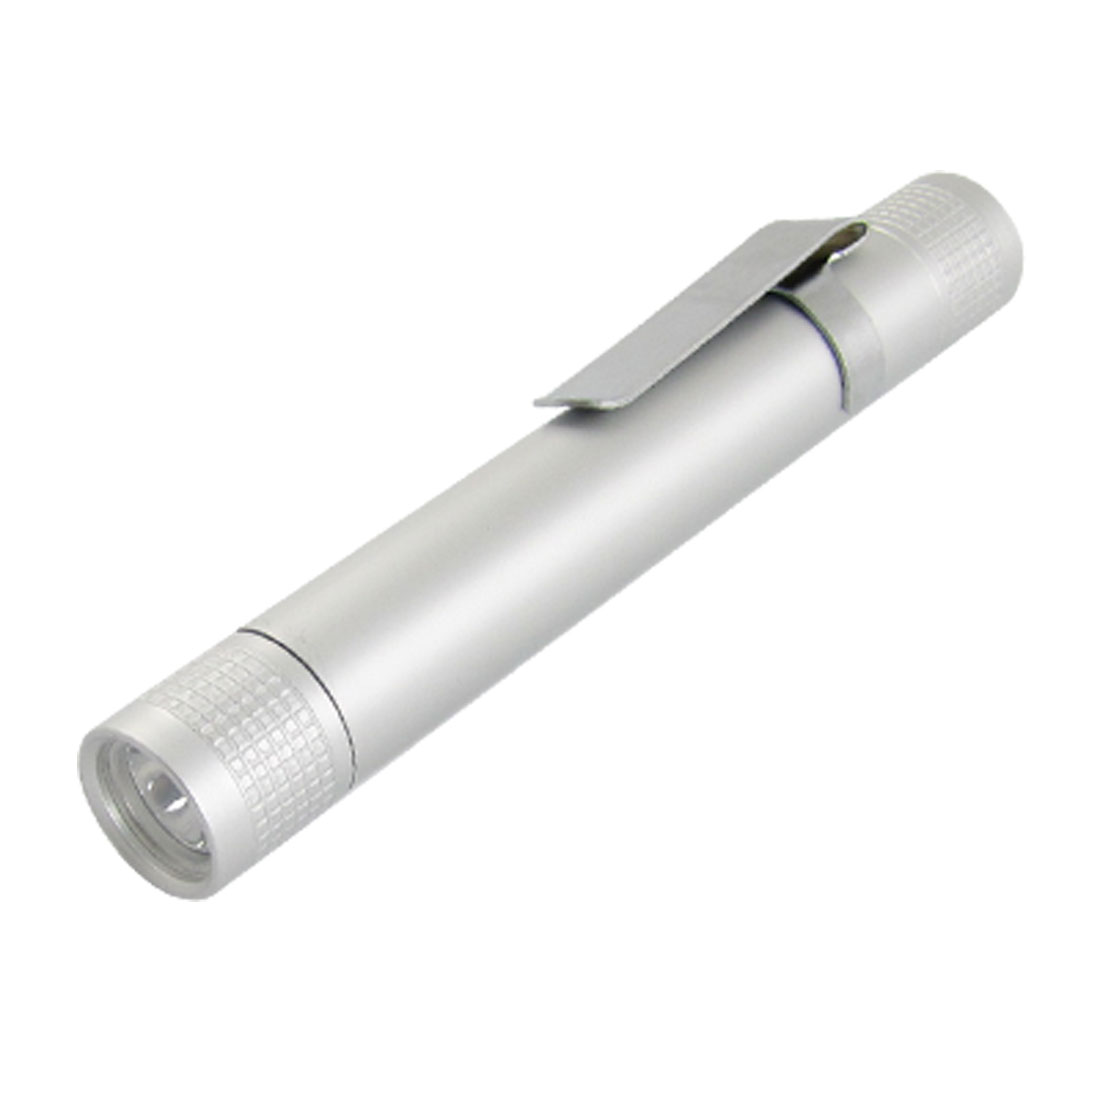 1 Watt White LED Flashlight Aluminum Mini Lamp Torch